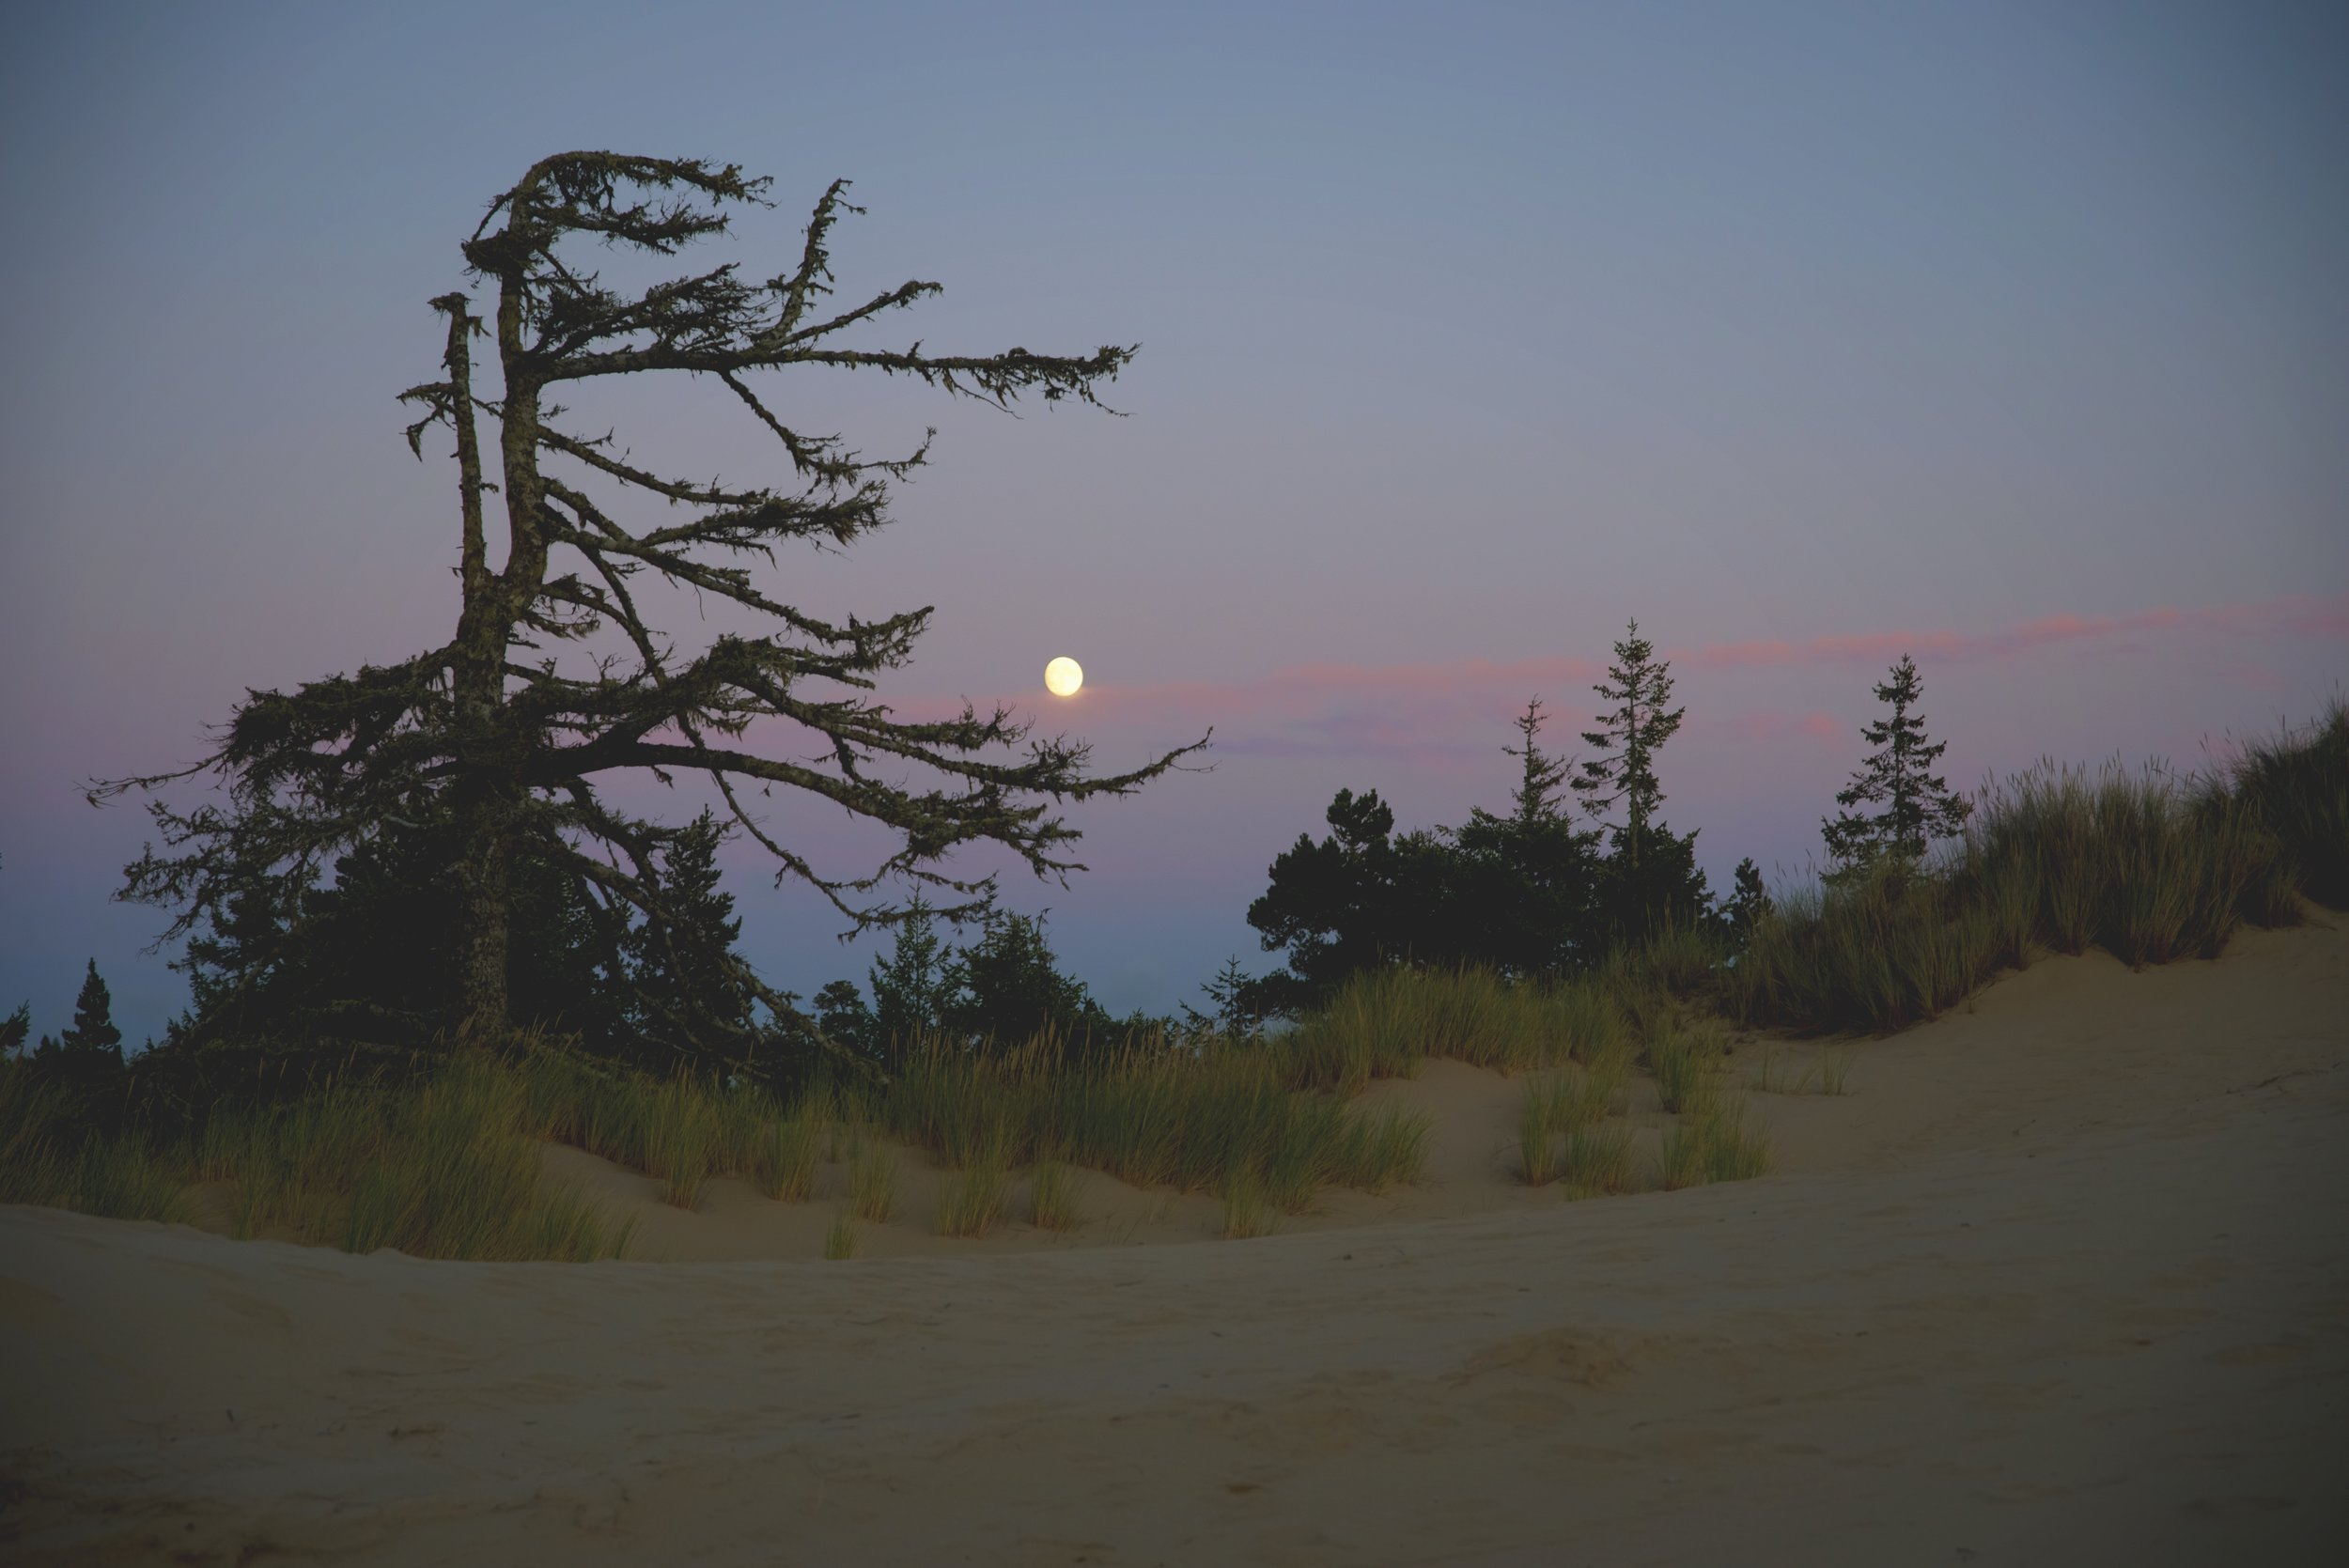 These scraggly shore pines somehow manage to survive in the poor soil of the dunes.